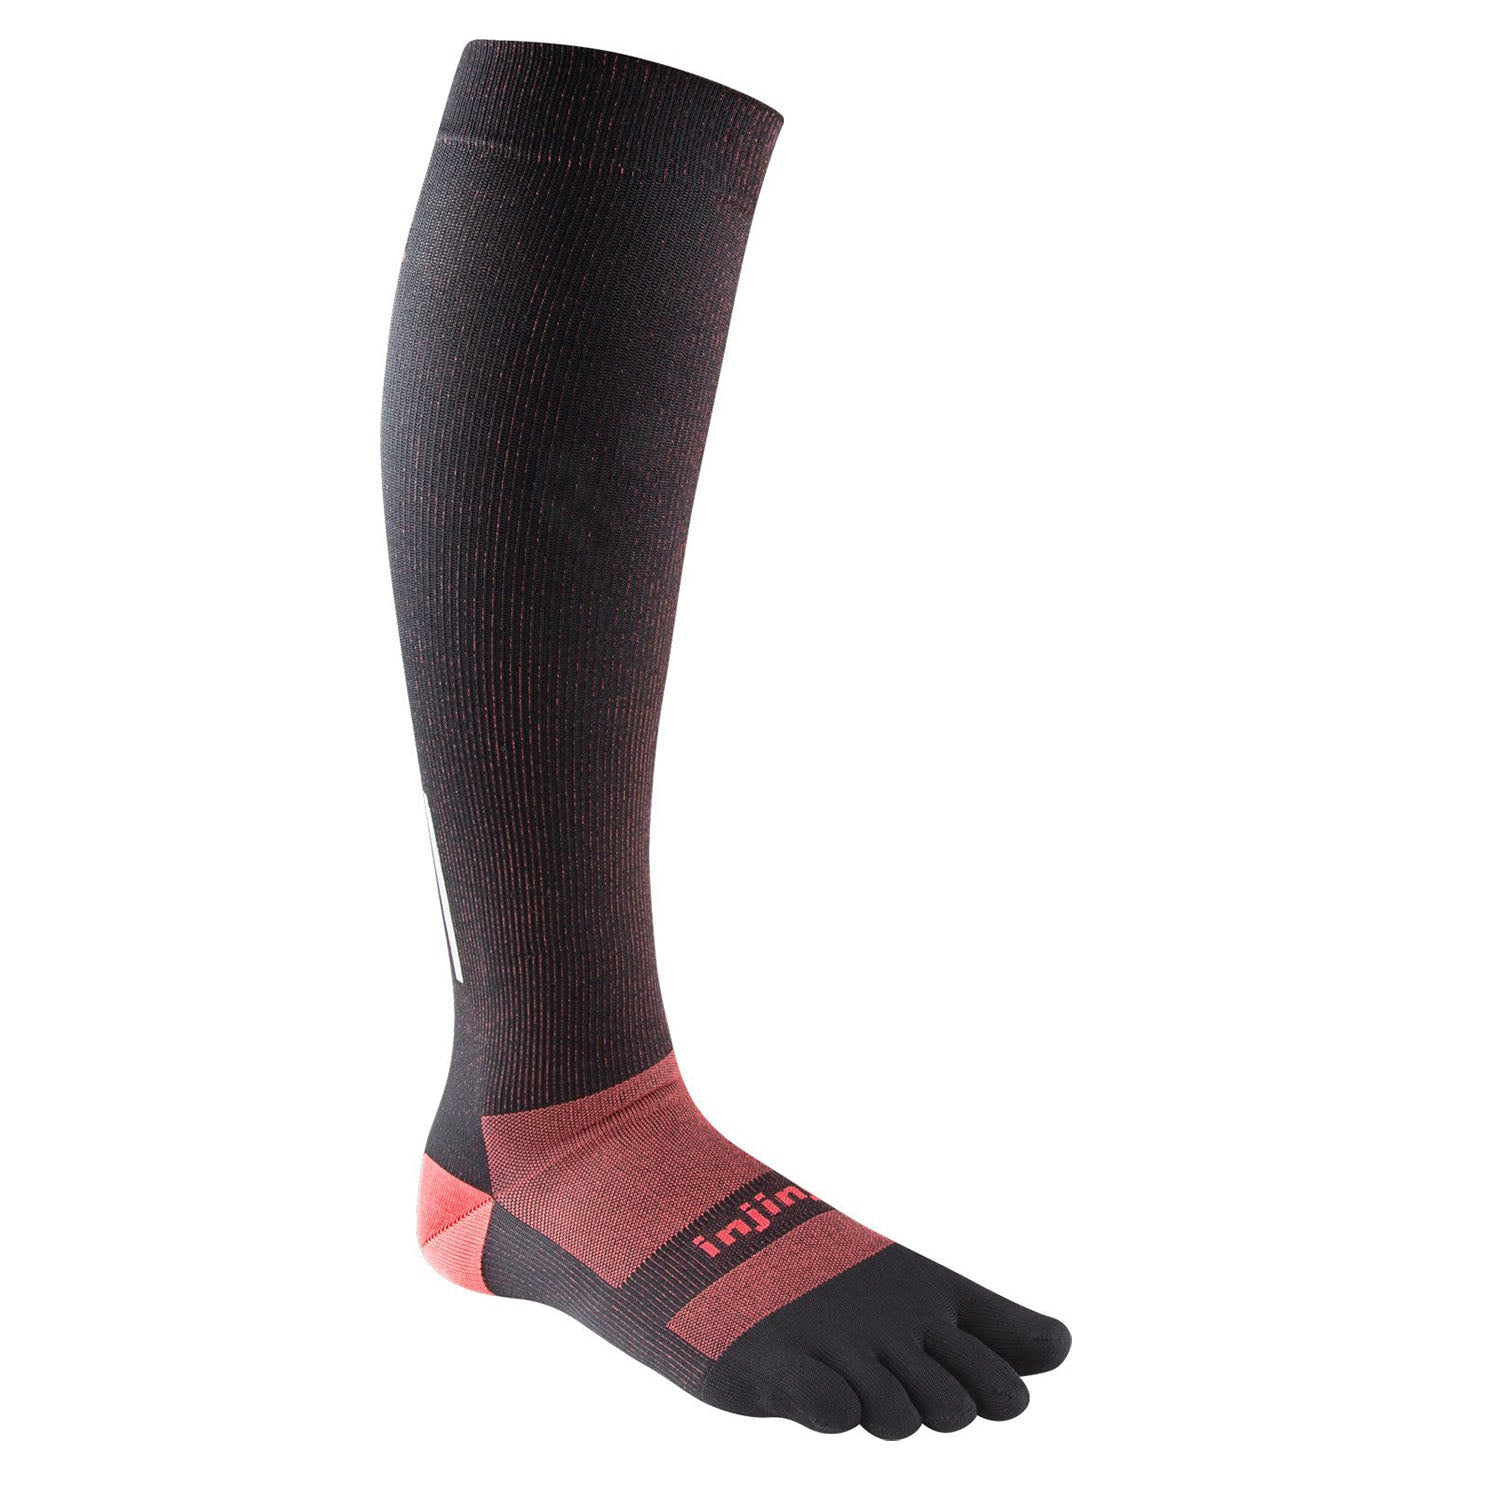 Injinji ULTRA Compression Socks - Black